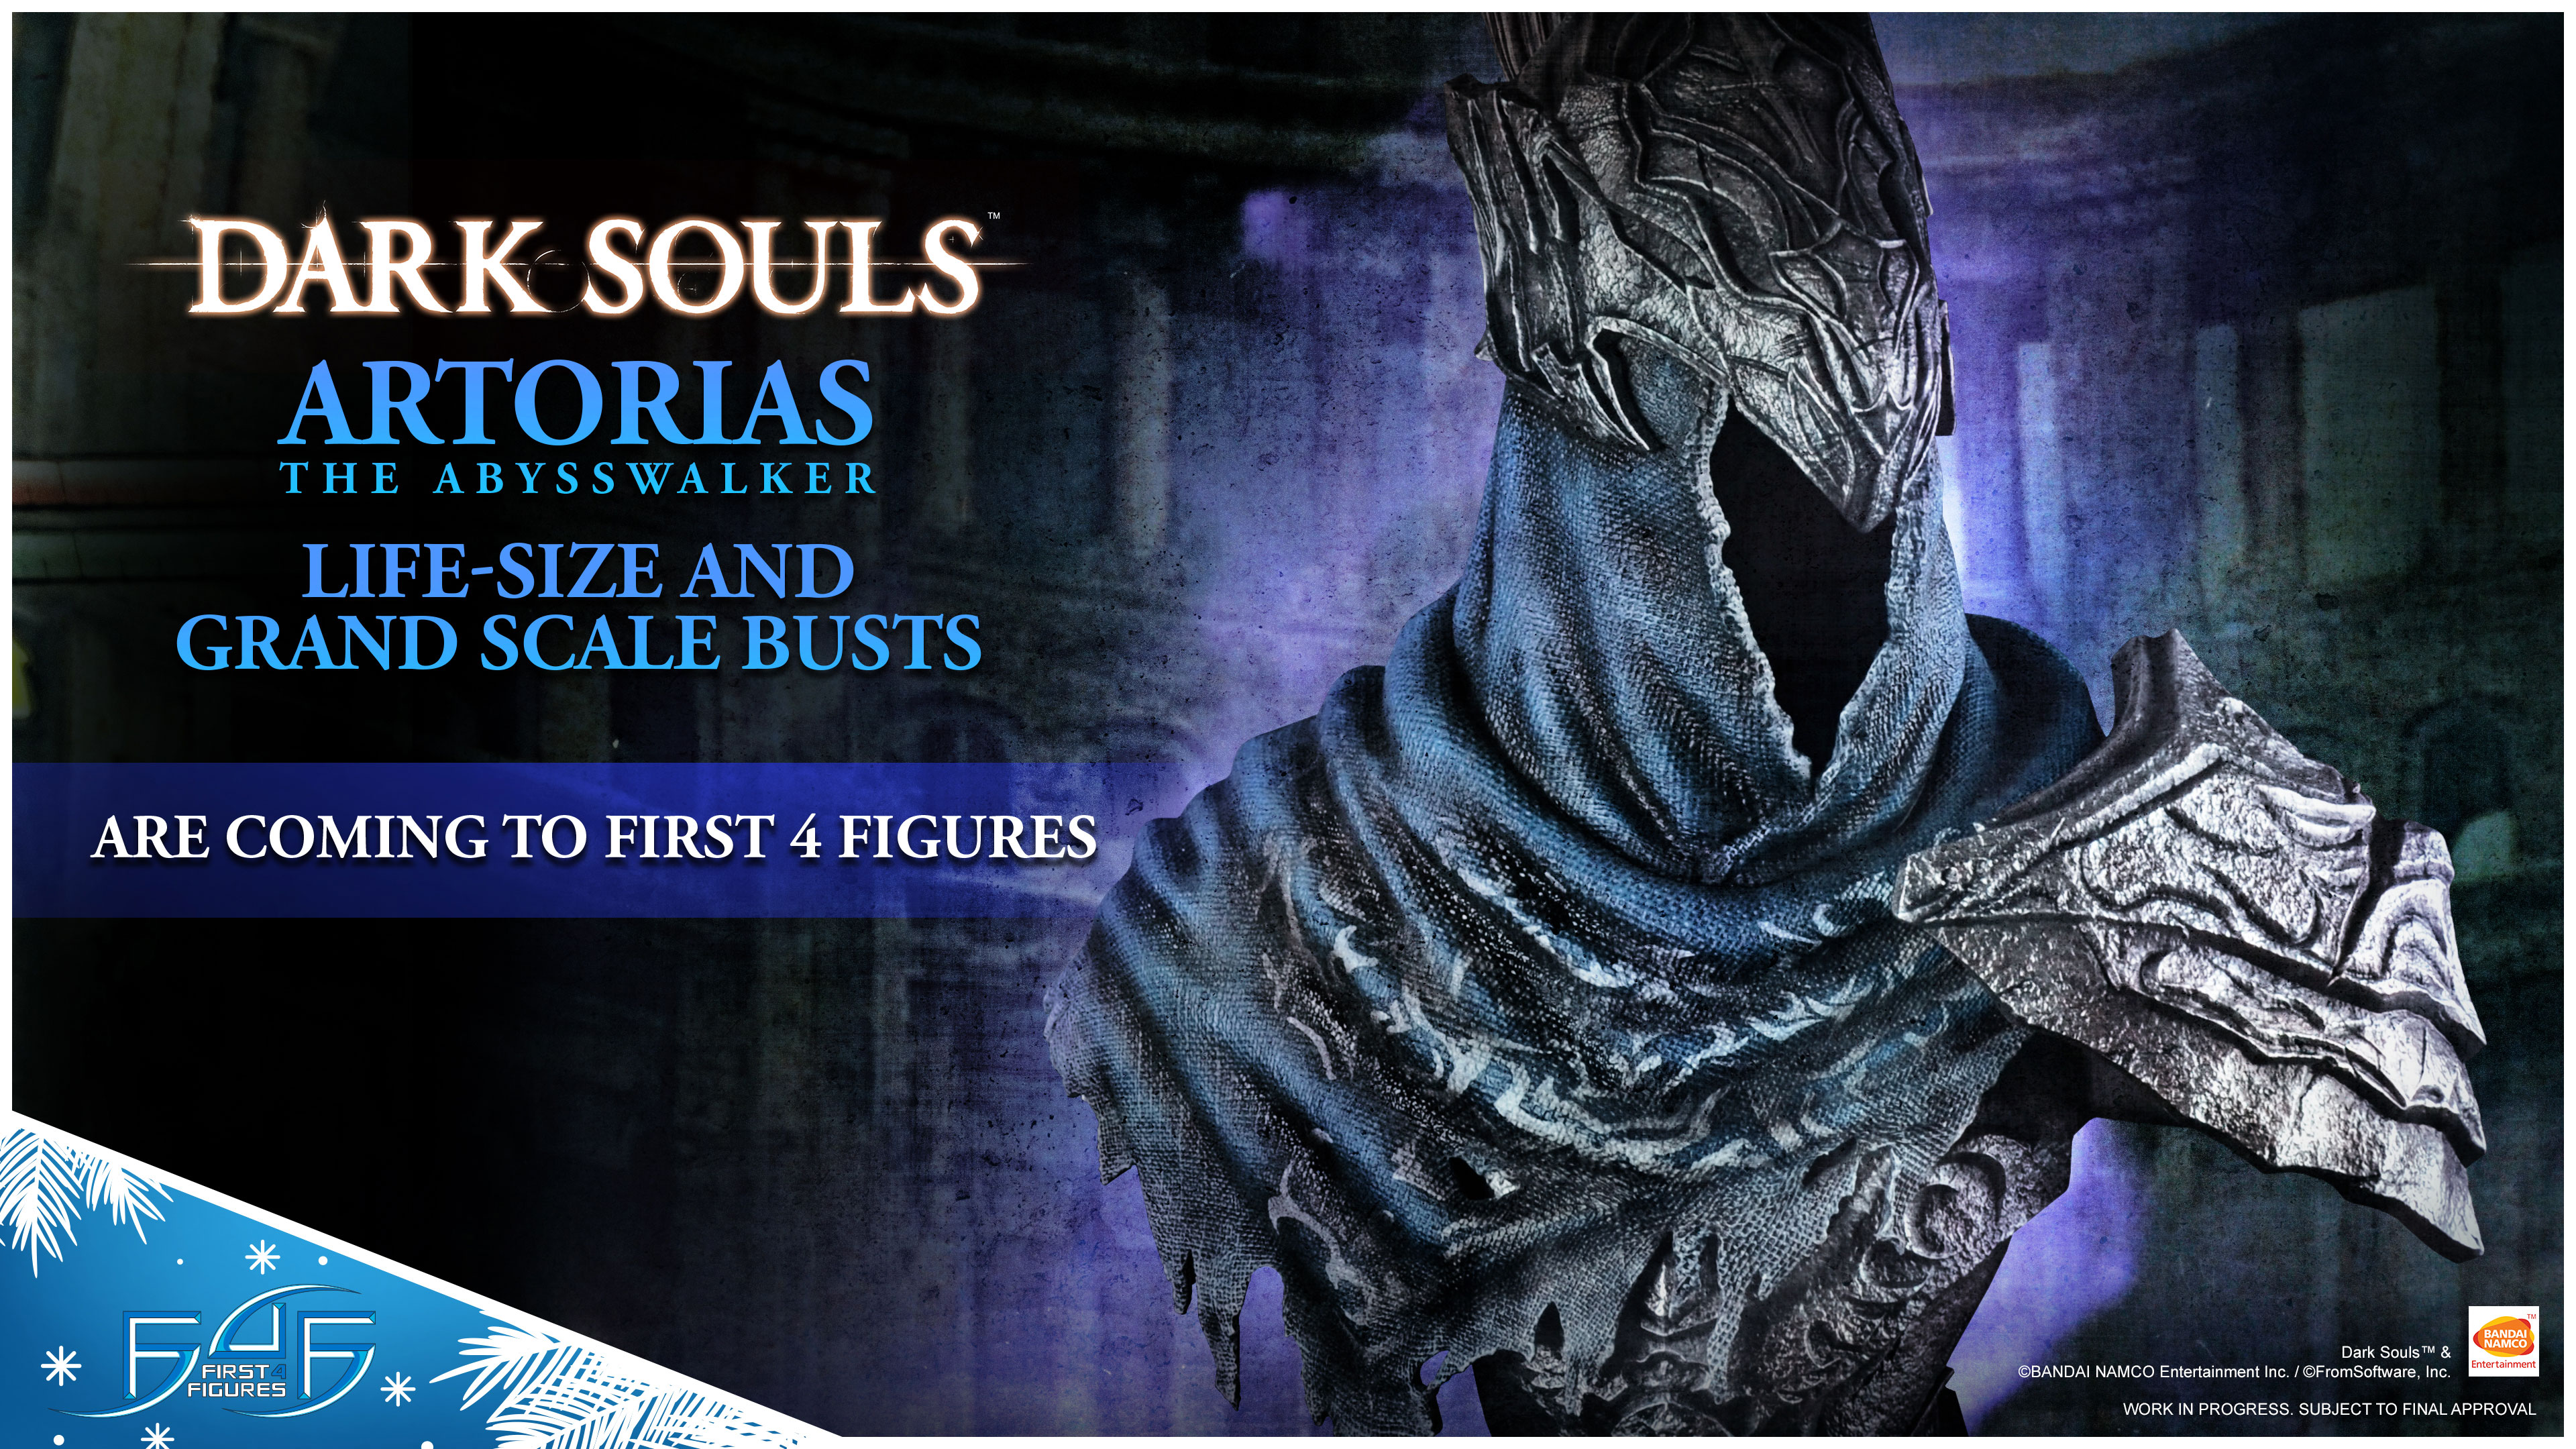 Artorias the Abysswalker Busts are coming to First 4 Figures!